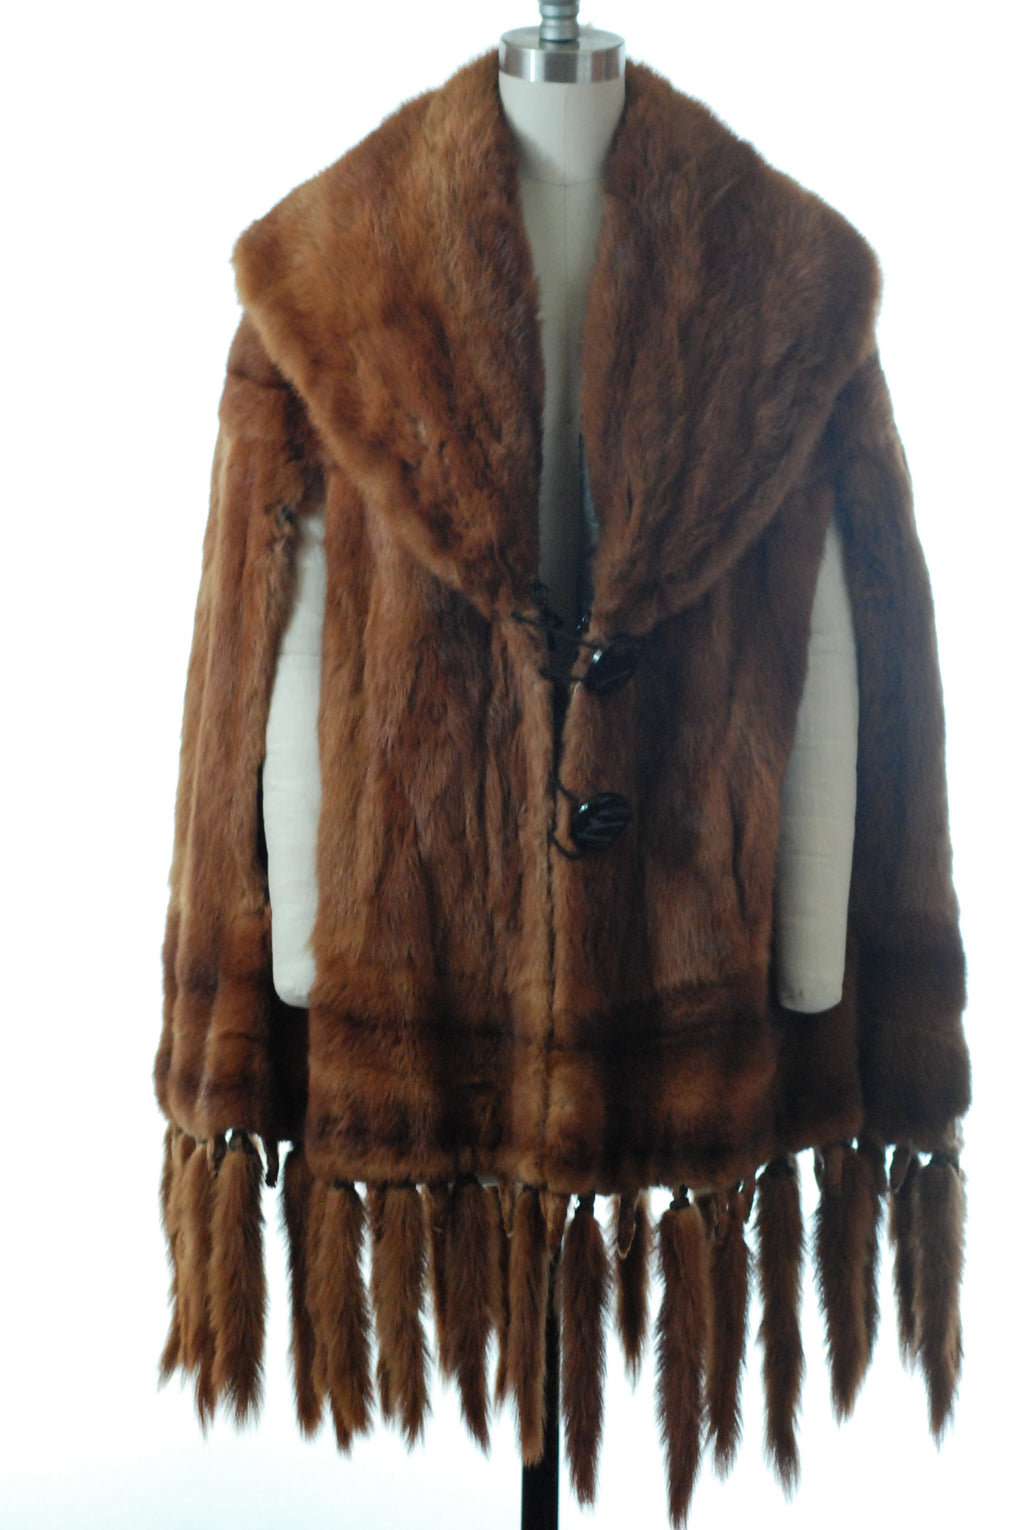 Magnificent Edwardian Fur Cape with Trim with a Fringe of Tails and Feet